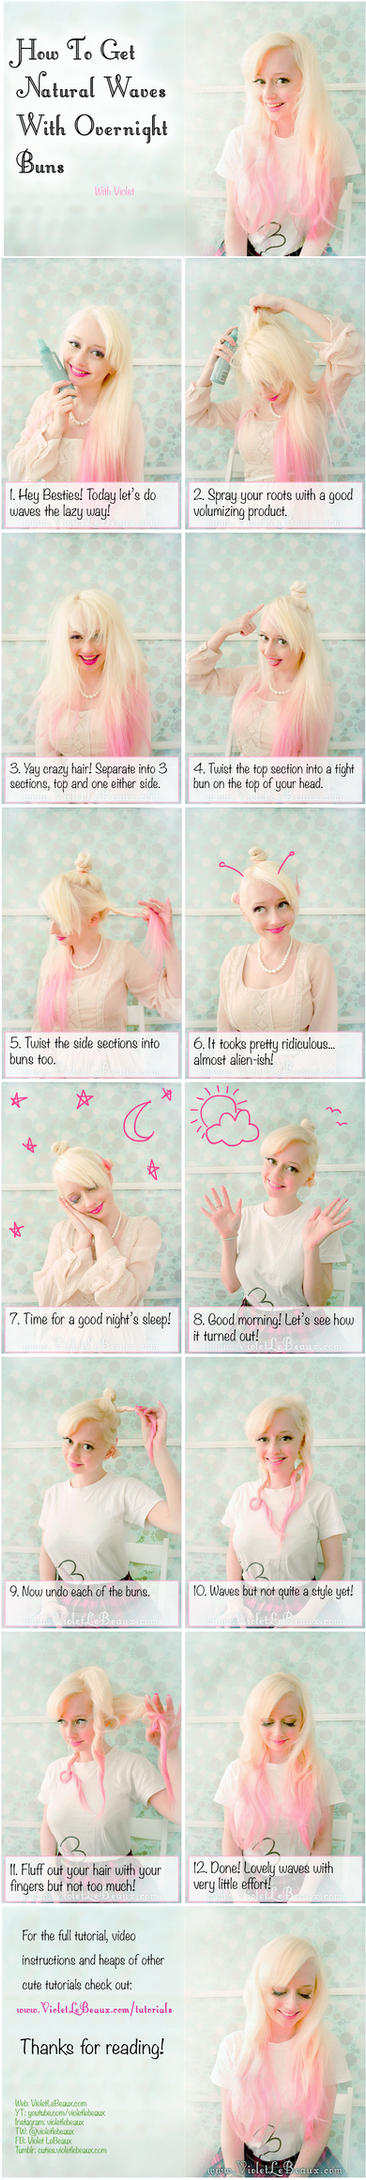 How To Use Buns For Easy Wavy Hair - Tutorial by VioletLeBeaux